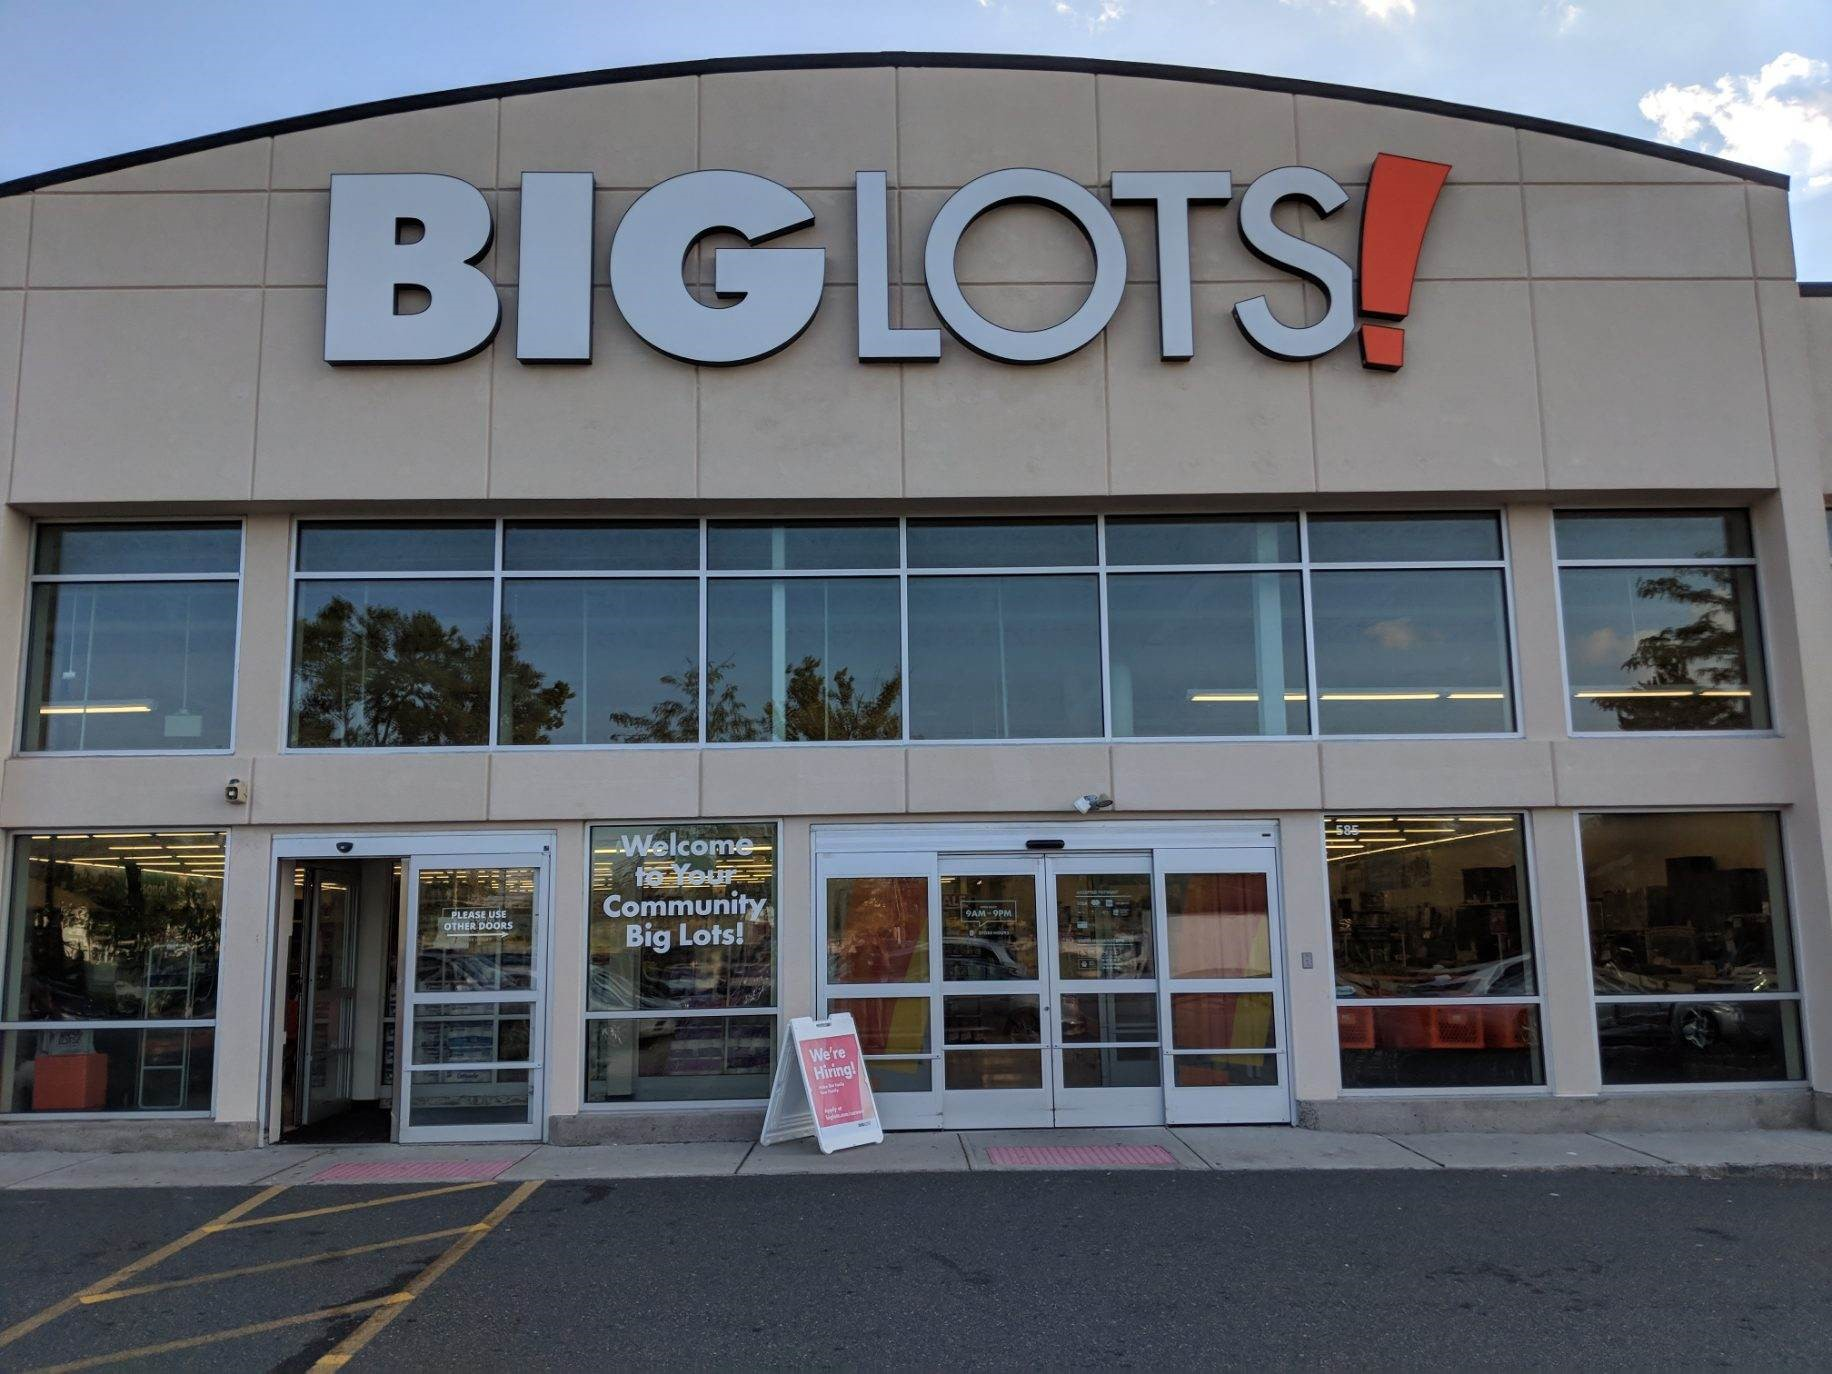 Livingston, NJ Big Lots Store #5257